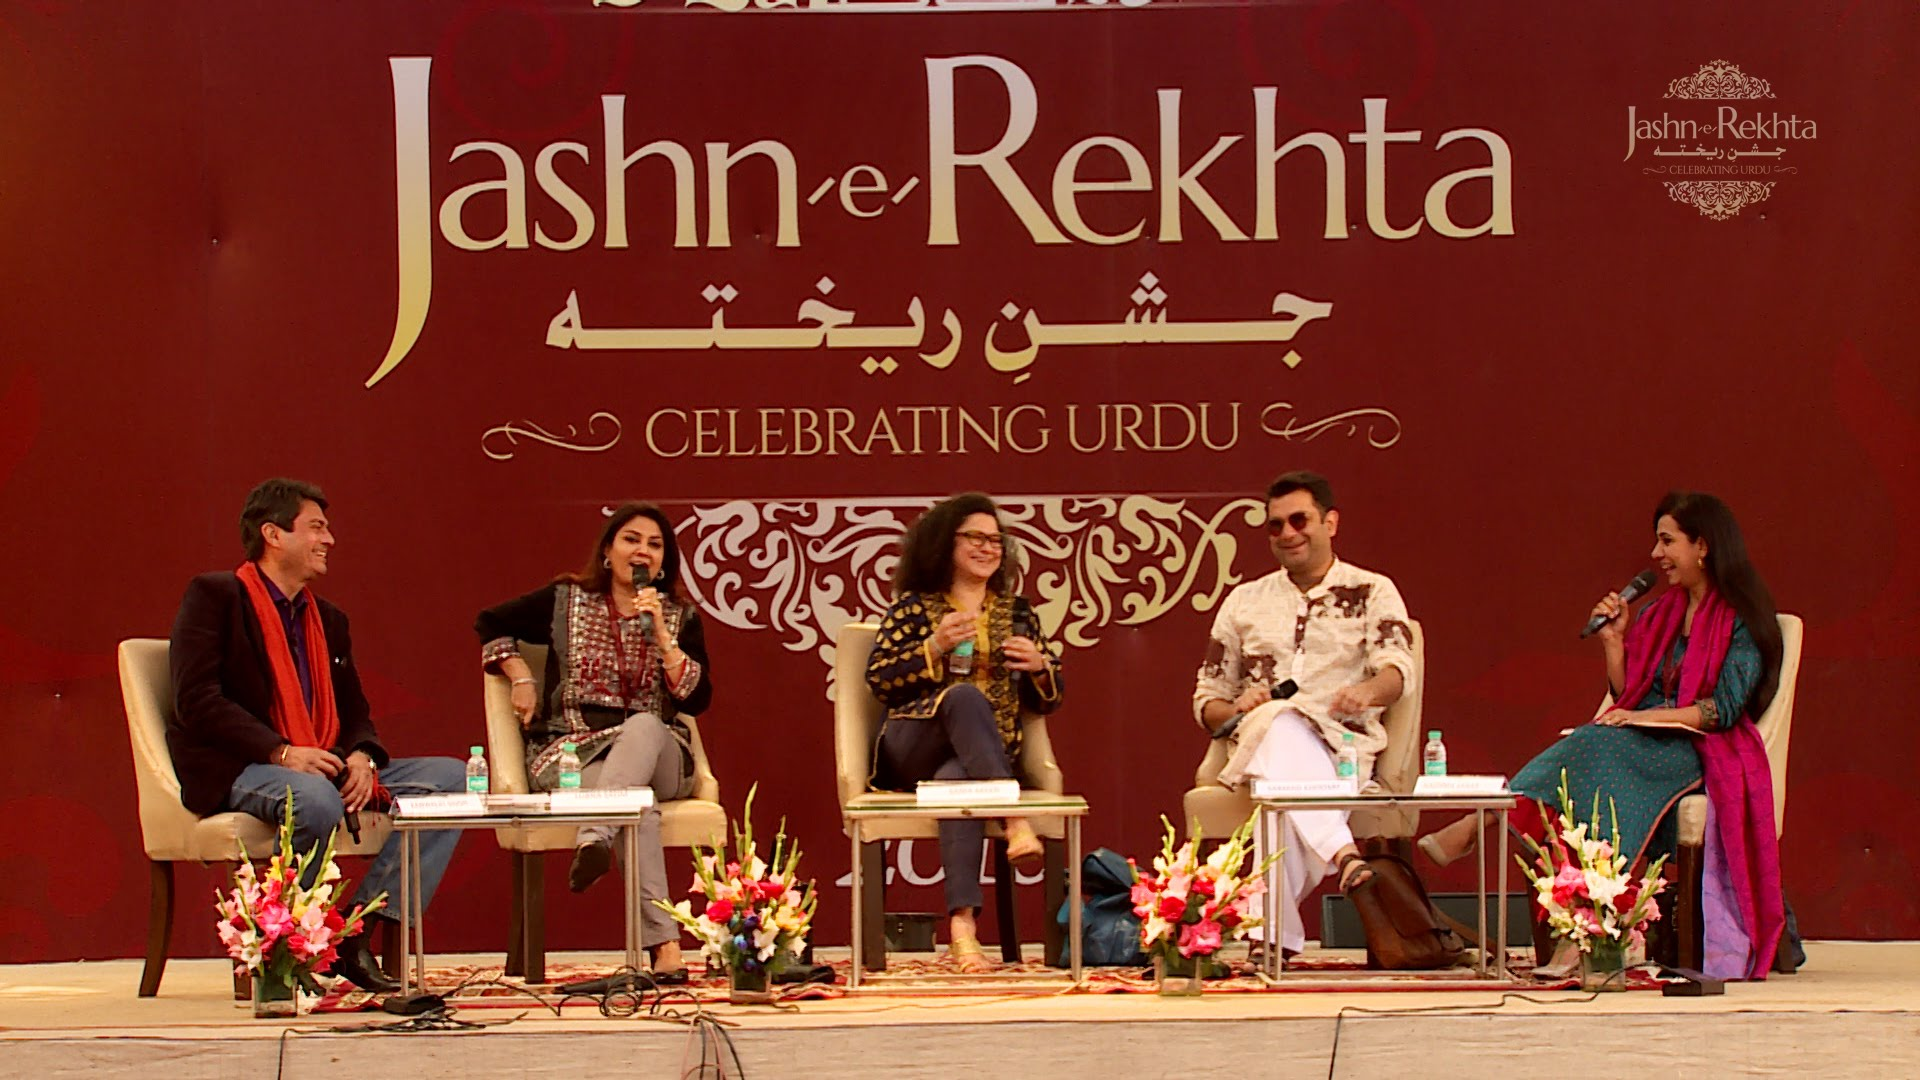 Jashn-e-Rekhta: A breath of fresh air